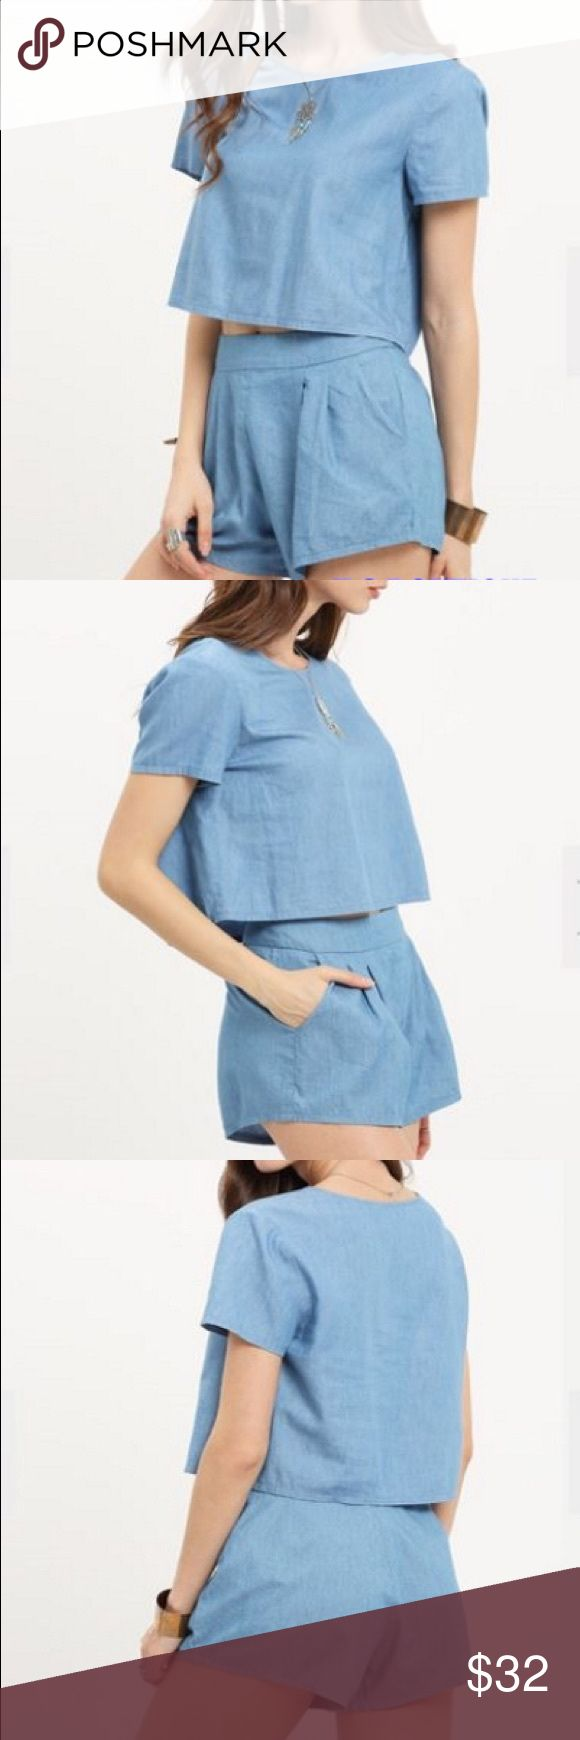 Light Blue Short Sleeve Twopiece Fabric: Fabric has no stretch Suit Type: Shorts Pattern Type: Plain Color: Blue Material: Cotton Neckline: Round Neck Sleeve Length: Short Sleeve Style: Casual Shorts Skorts